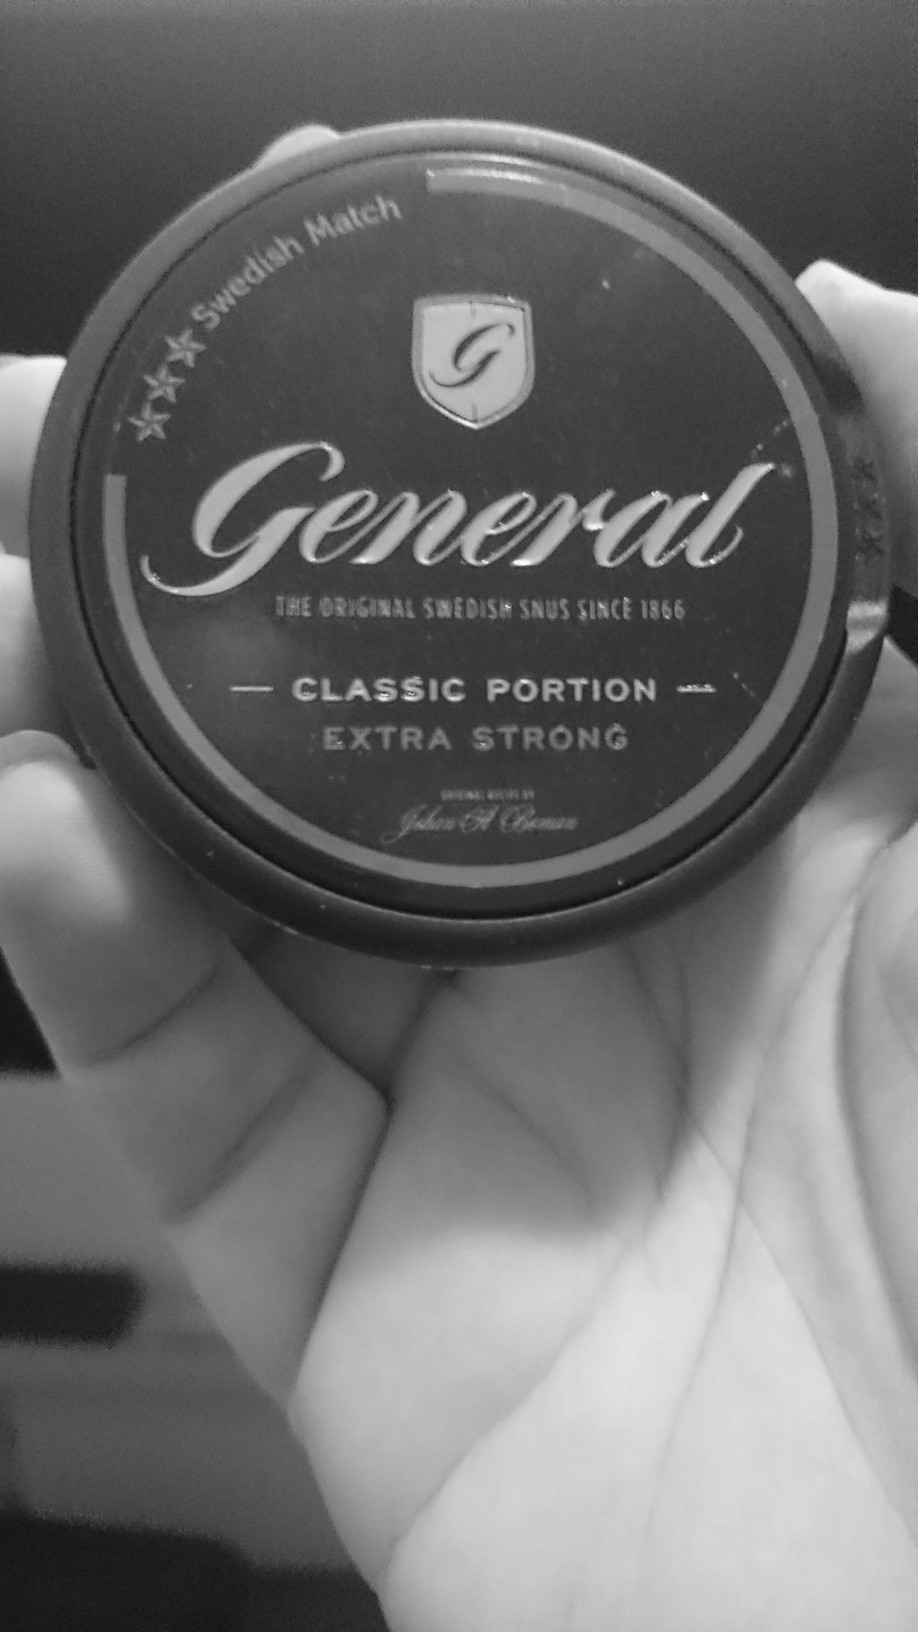 Holding a box of General snus